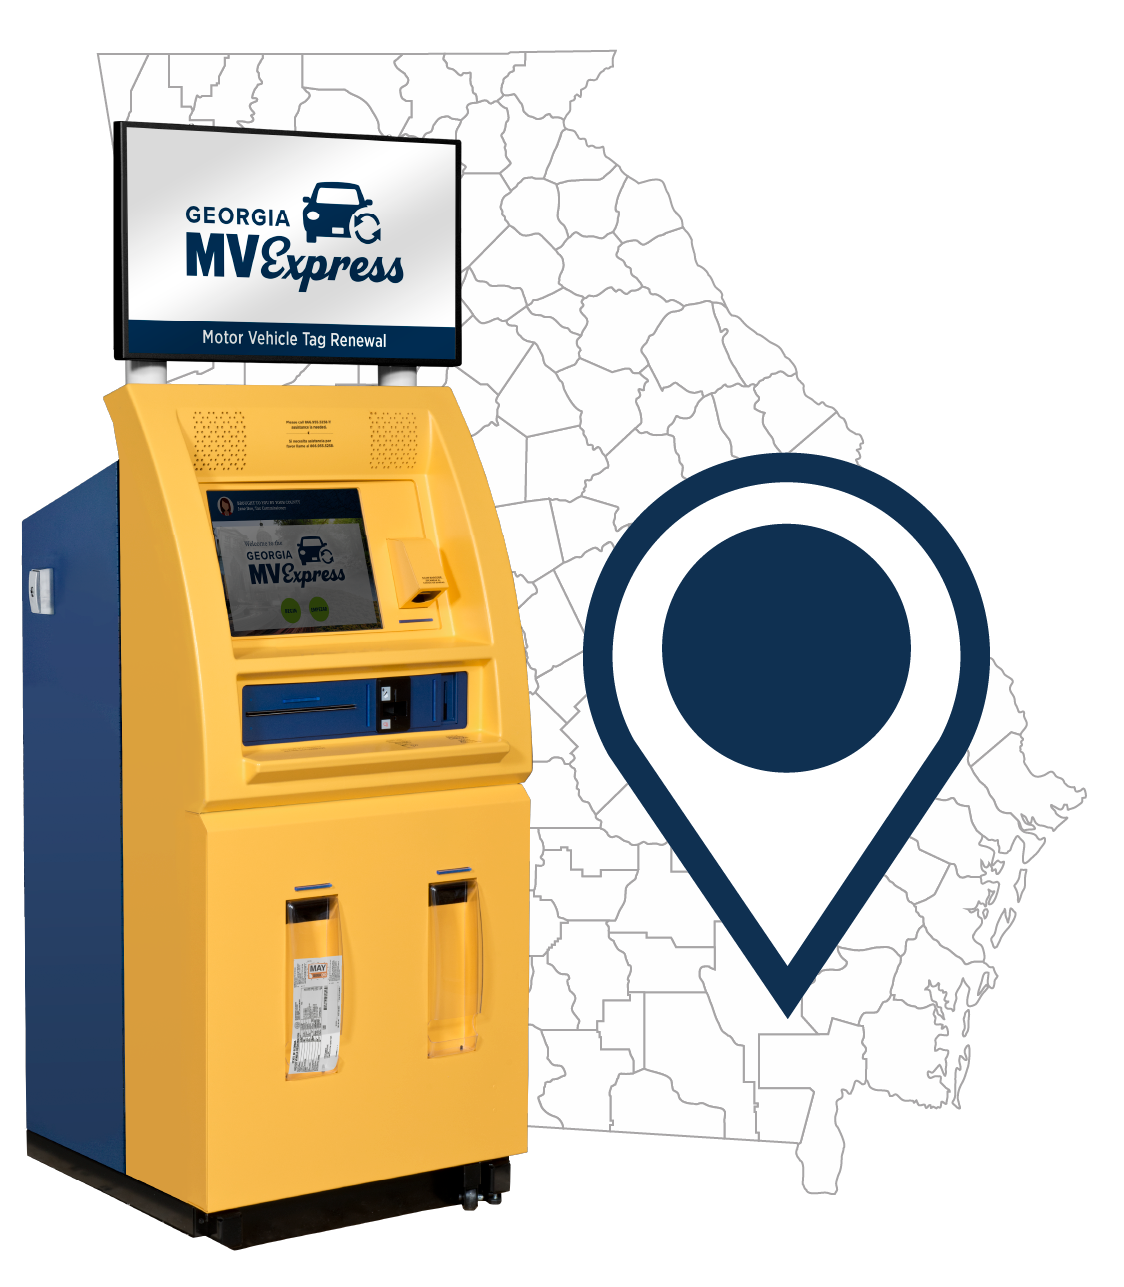 GA County Map with Kiosk